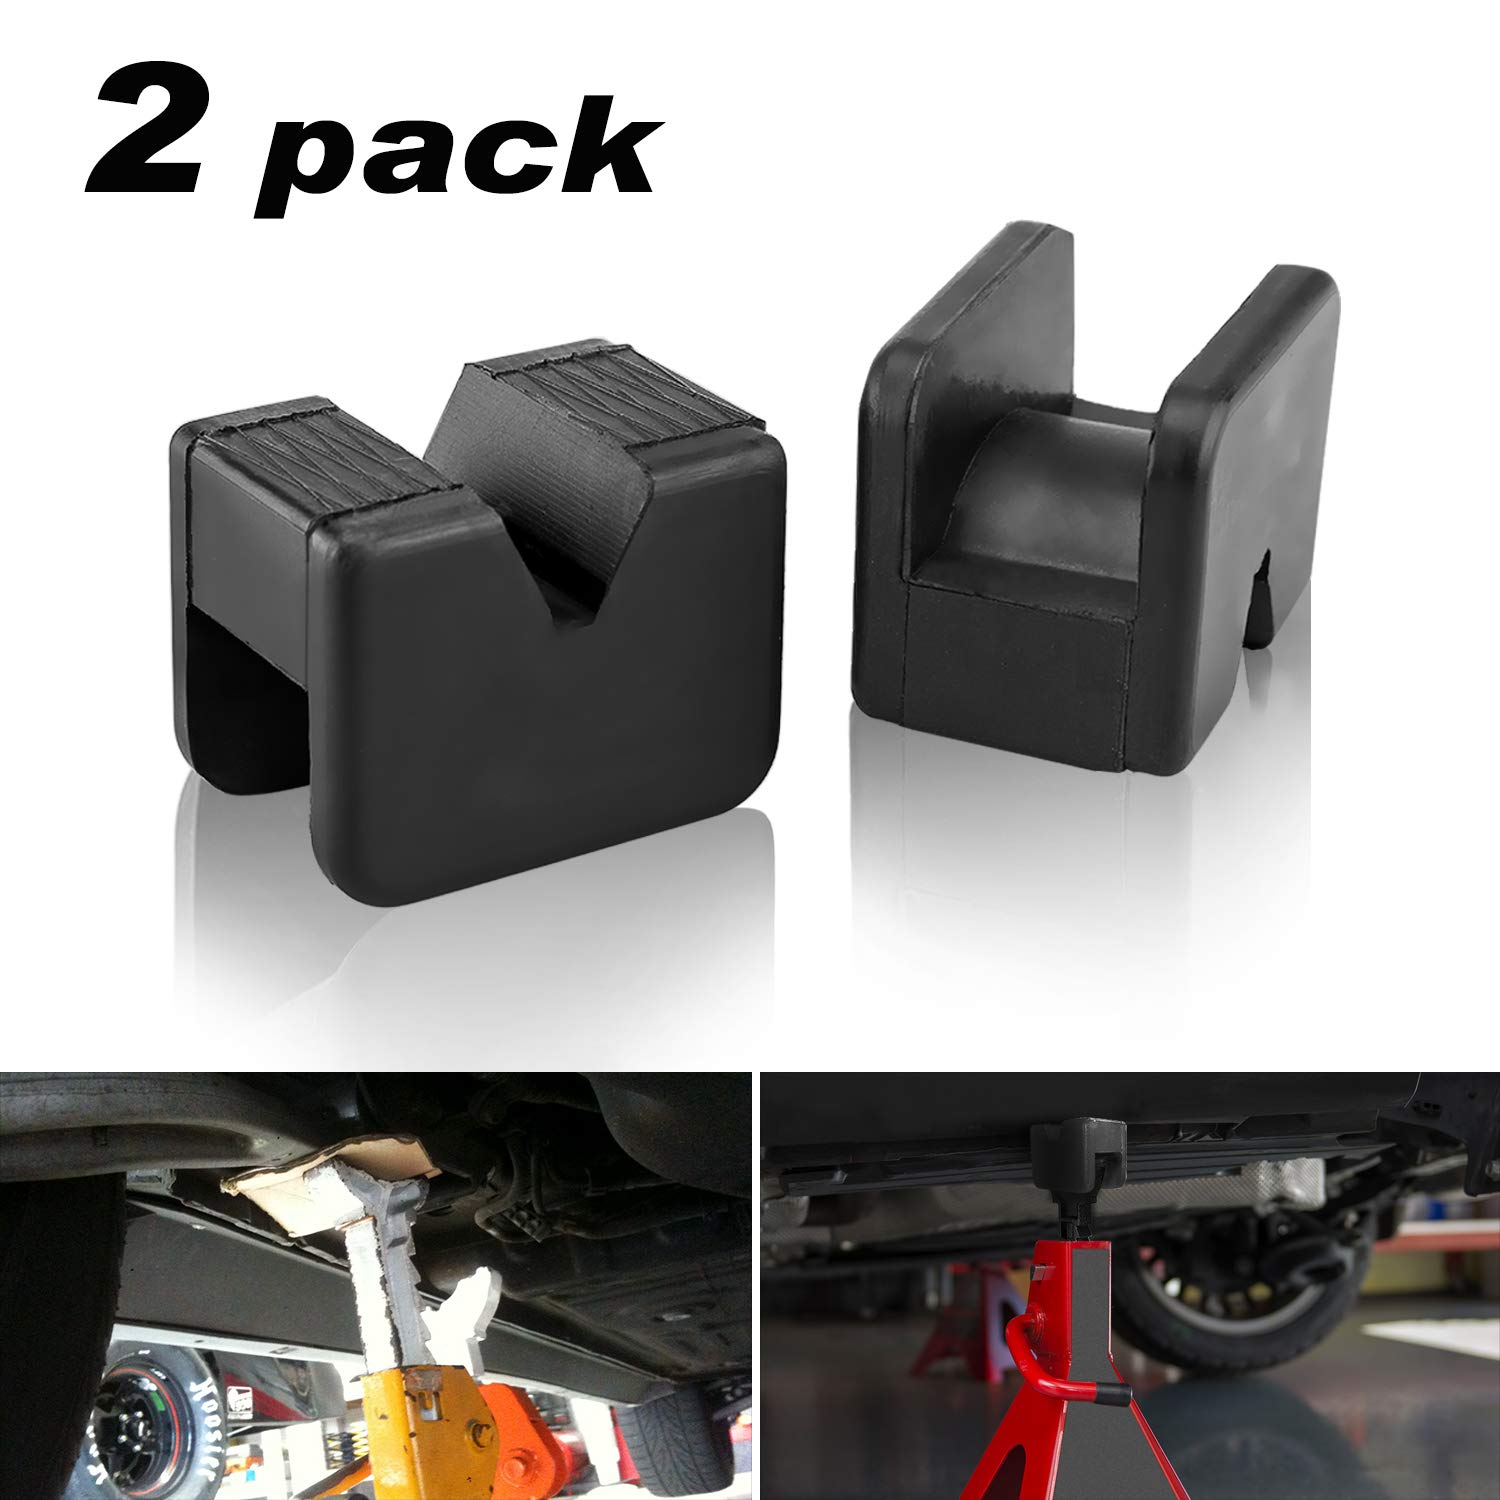 2 Pack Seven Sparta Jack Pad Adapter for Jack Stand 2-3 Ton Universal Rubber Slotted Frame Rail Pinch welds Protector